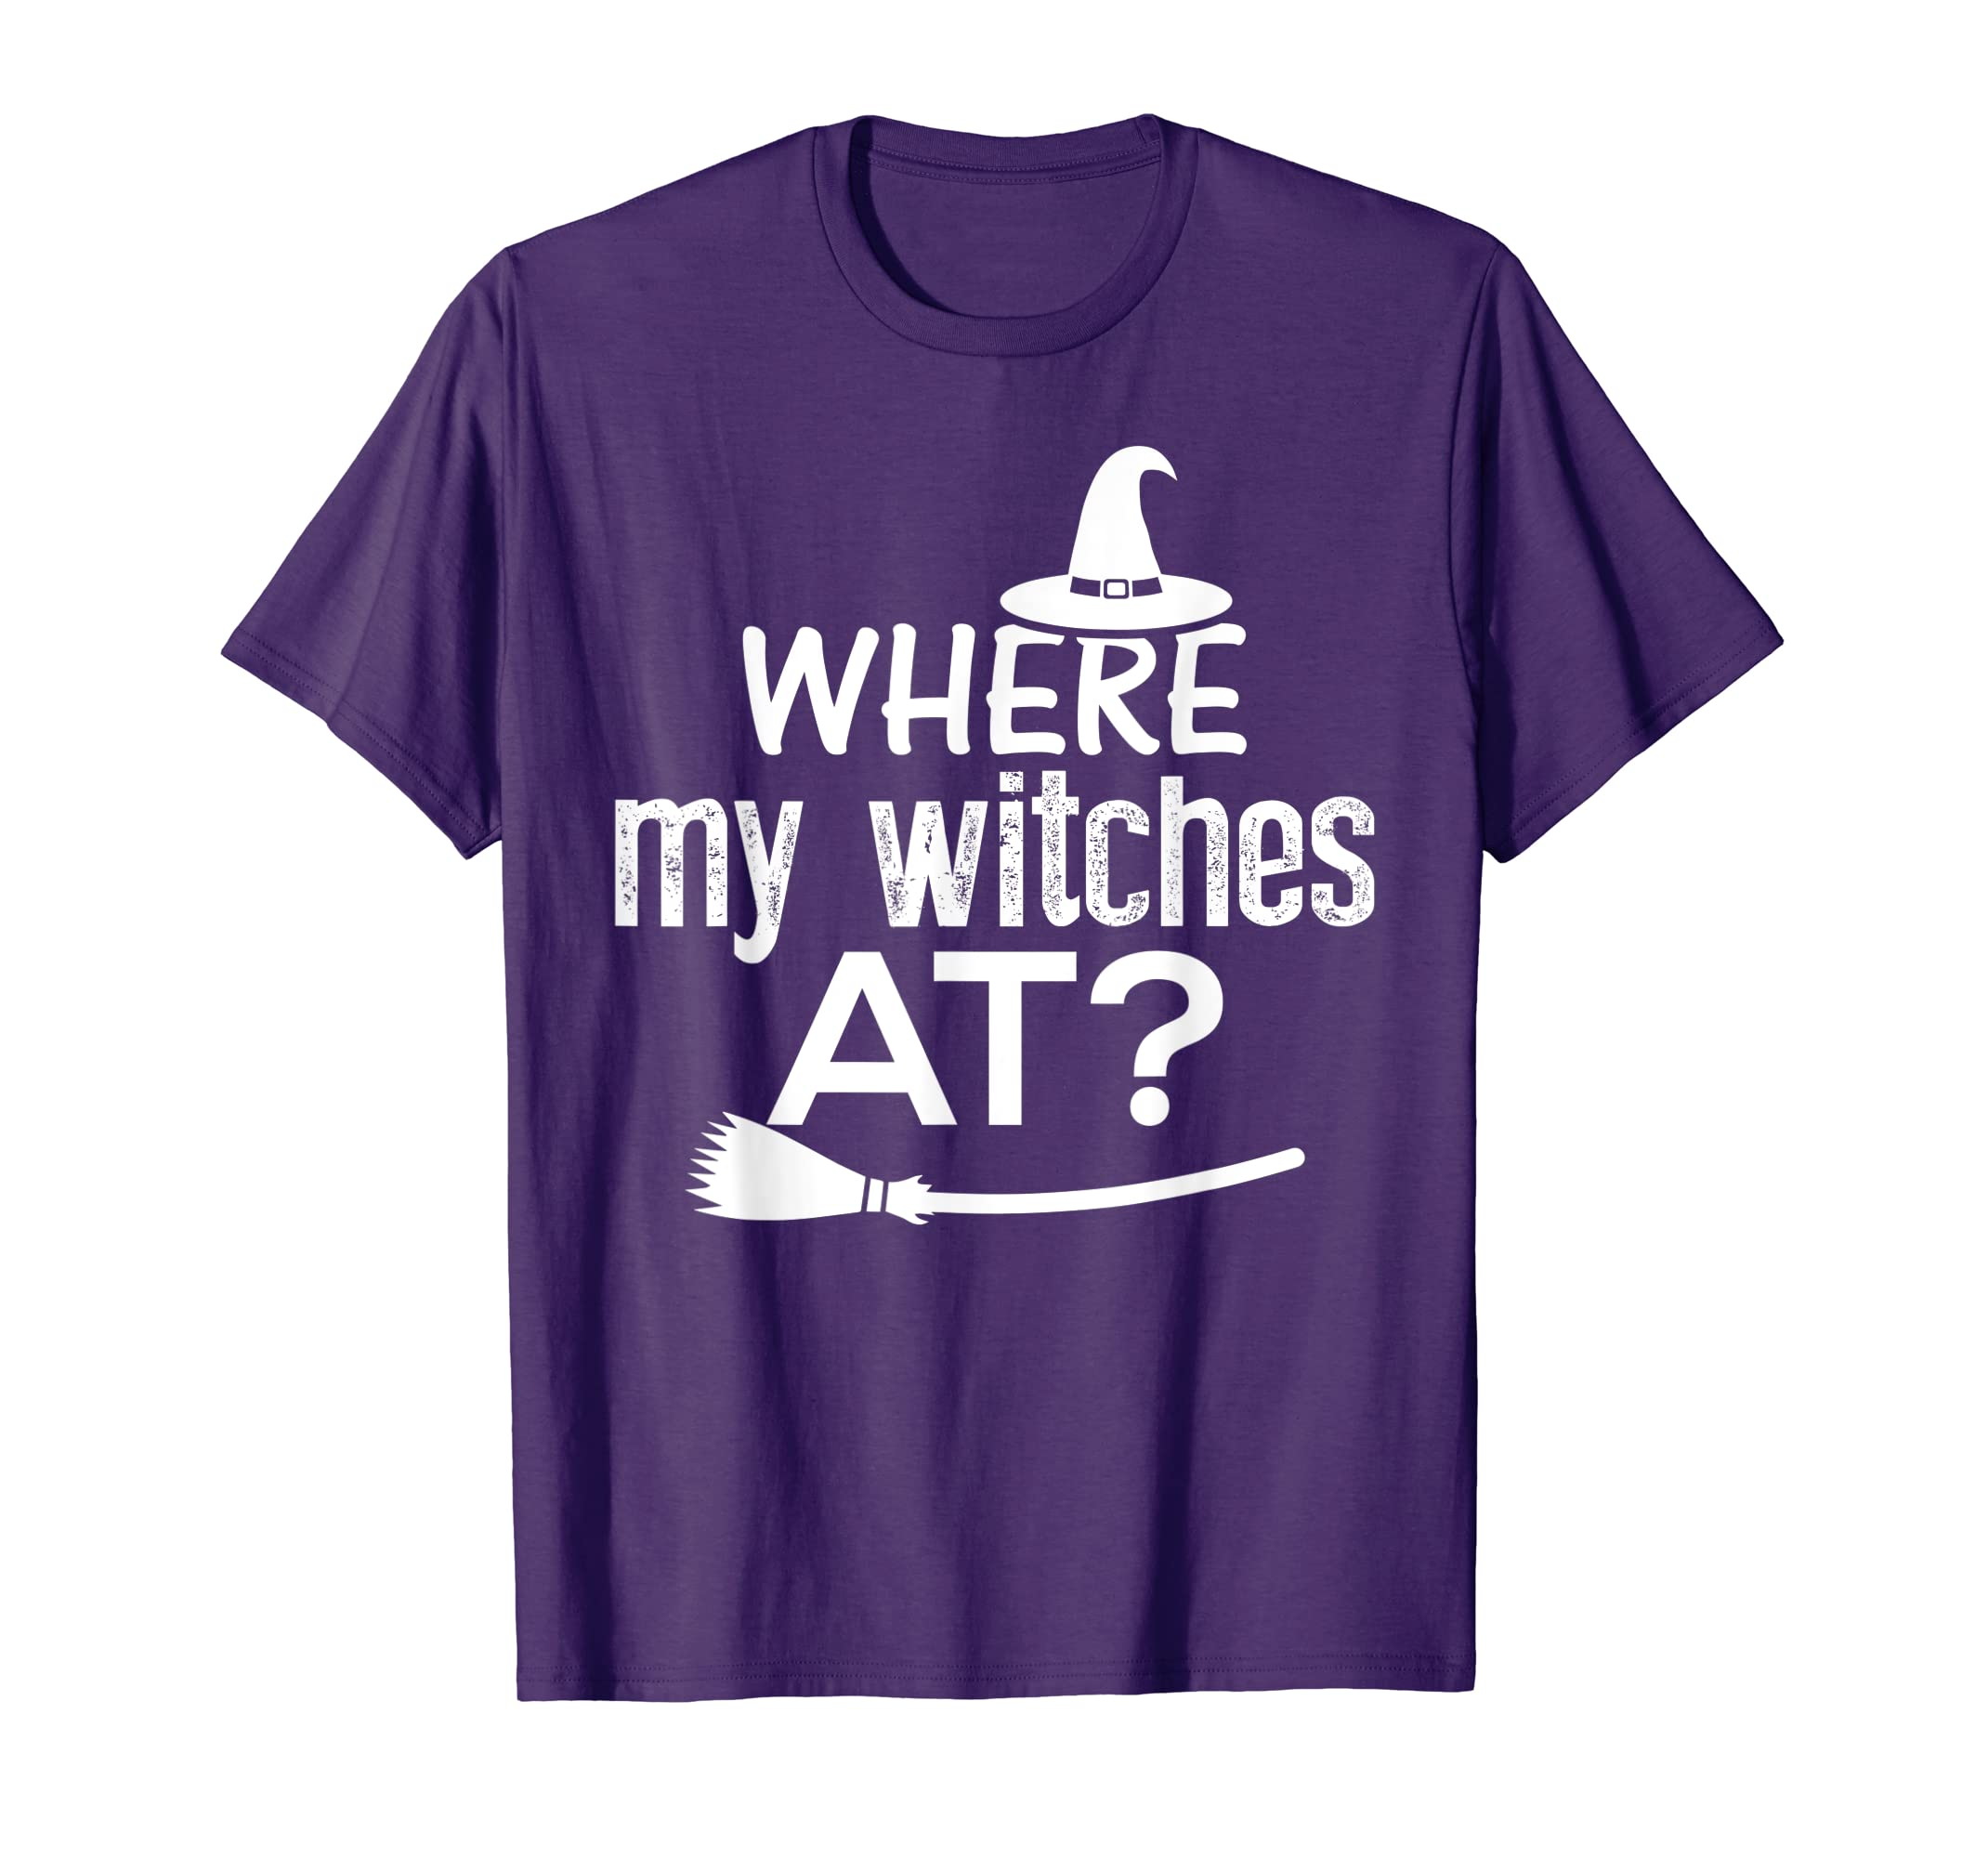 55695dec749d7 Amazon.com: Where my Witches at Funny Halloween Shirt: Clothing